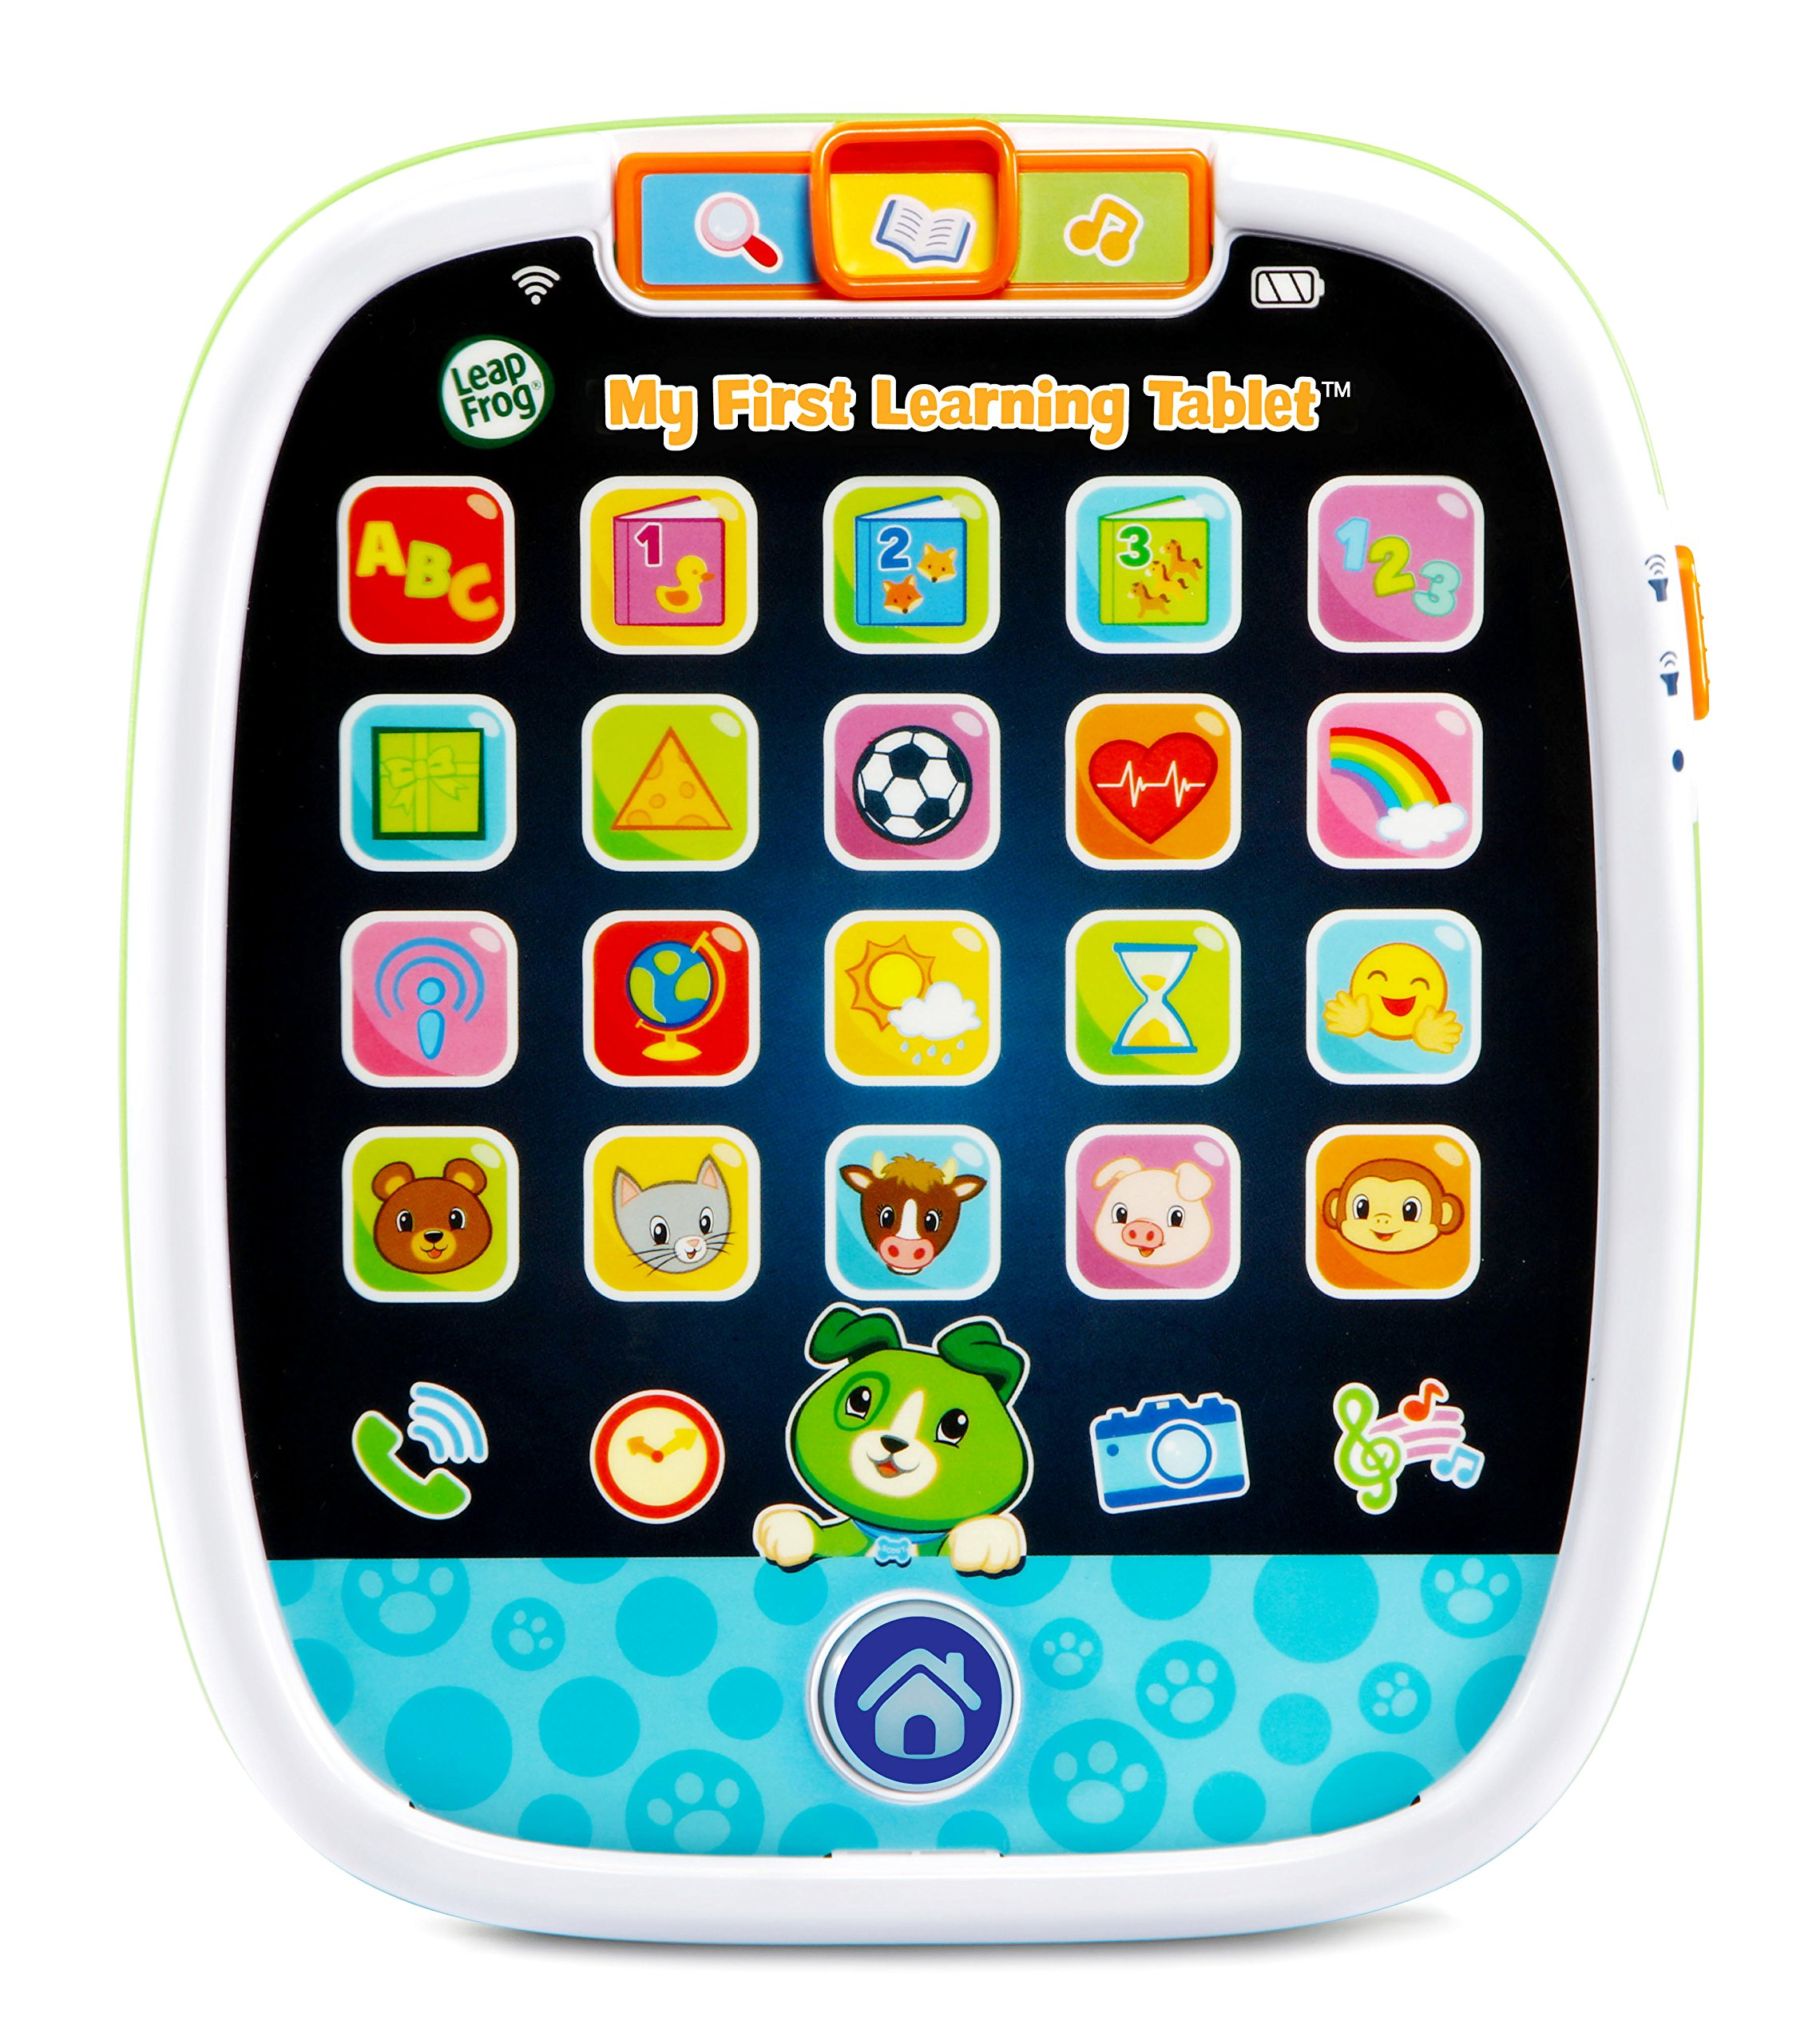 LeapFrog My First Learning Tablet, Black by LeapFrog (Image #1)